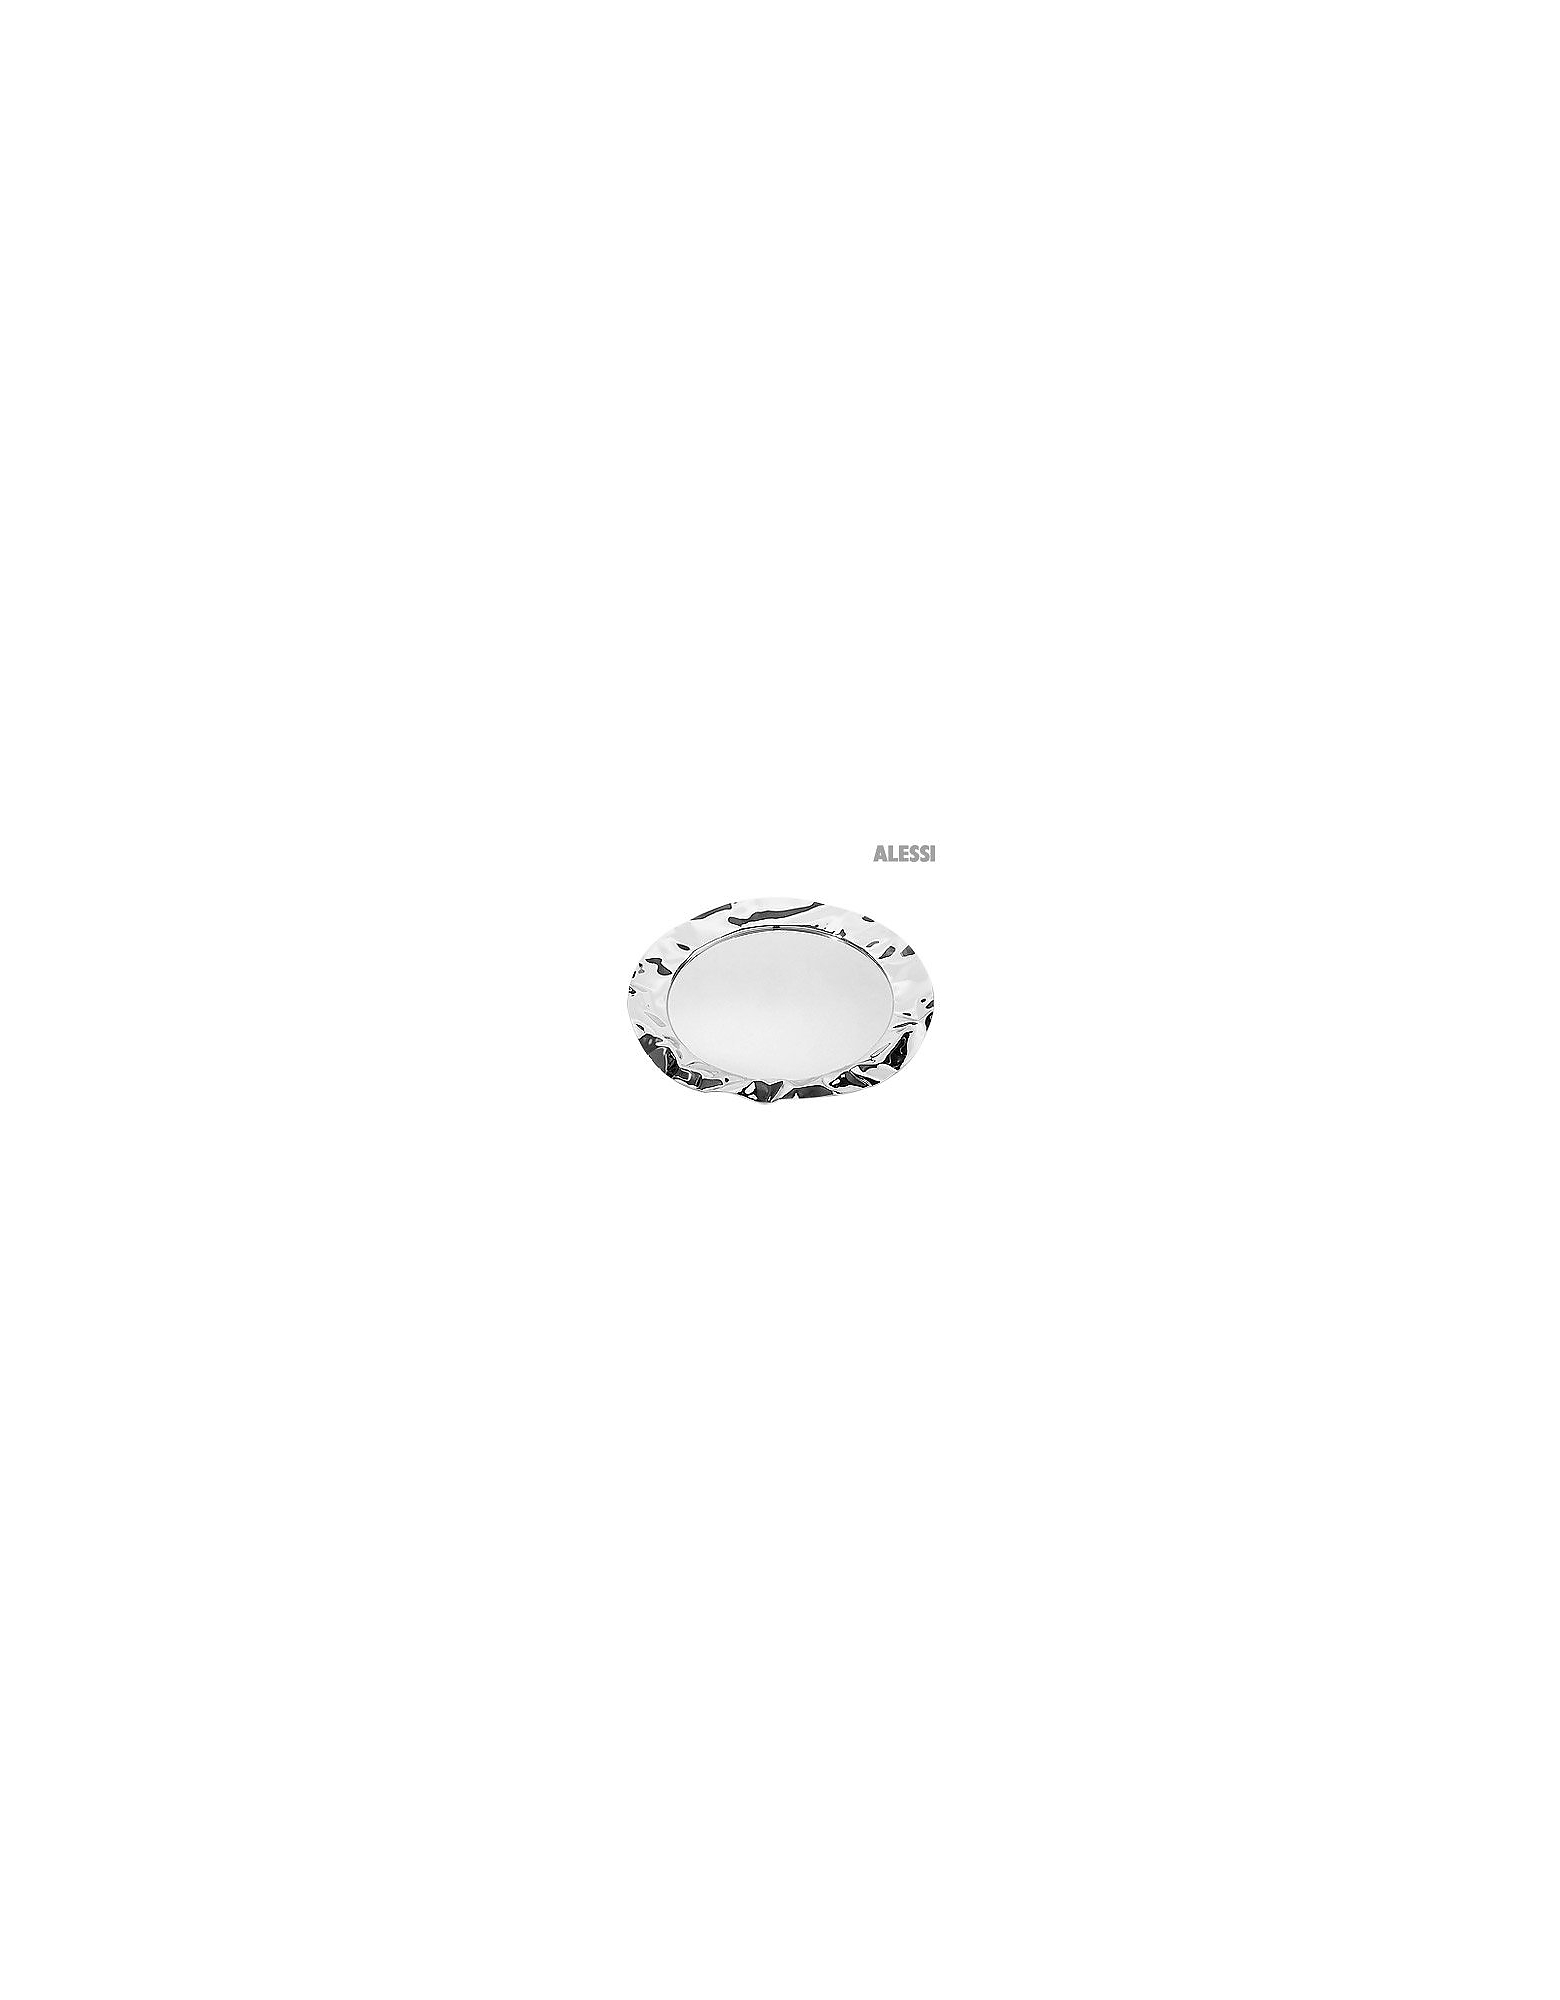 Alessi Kitchen & Dining, Foix - Stainless Steel Round Tray